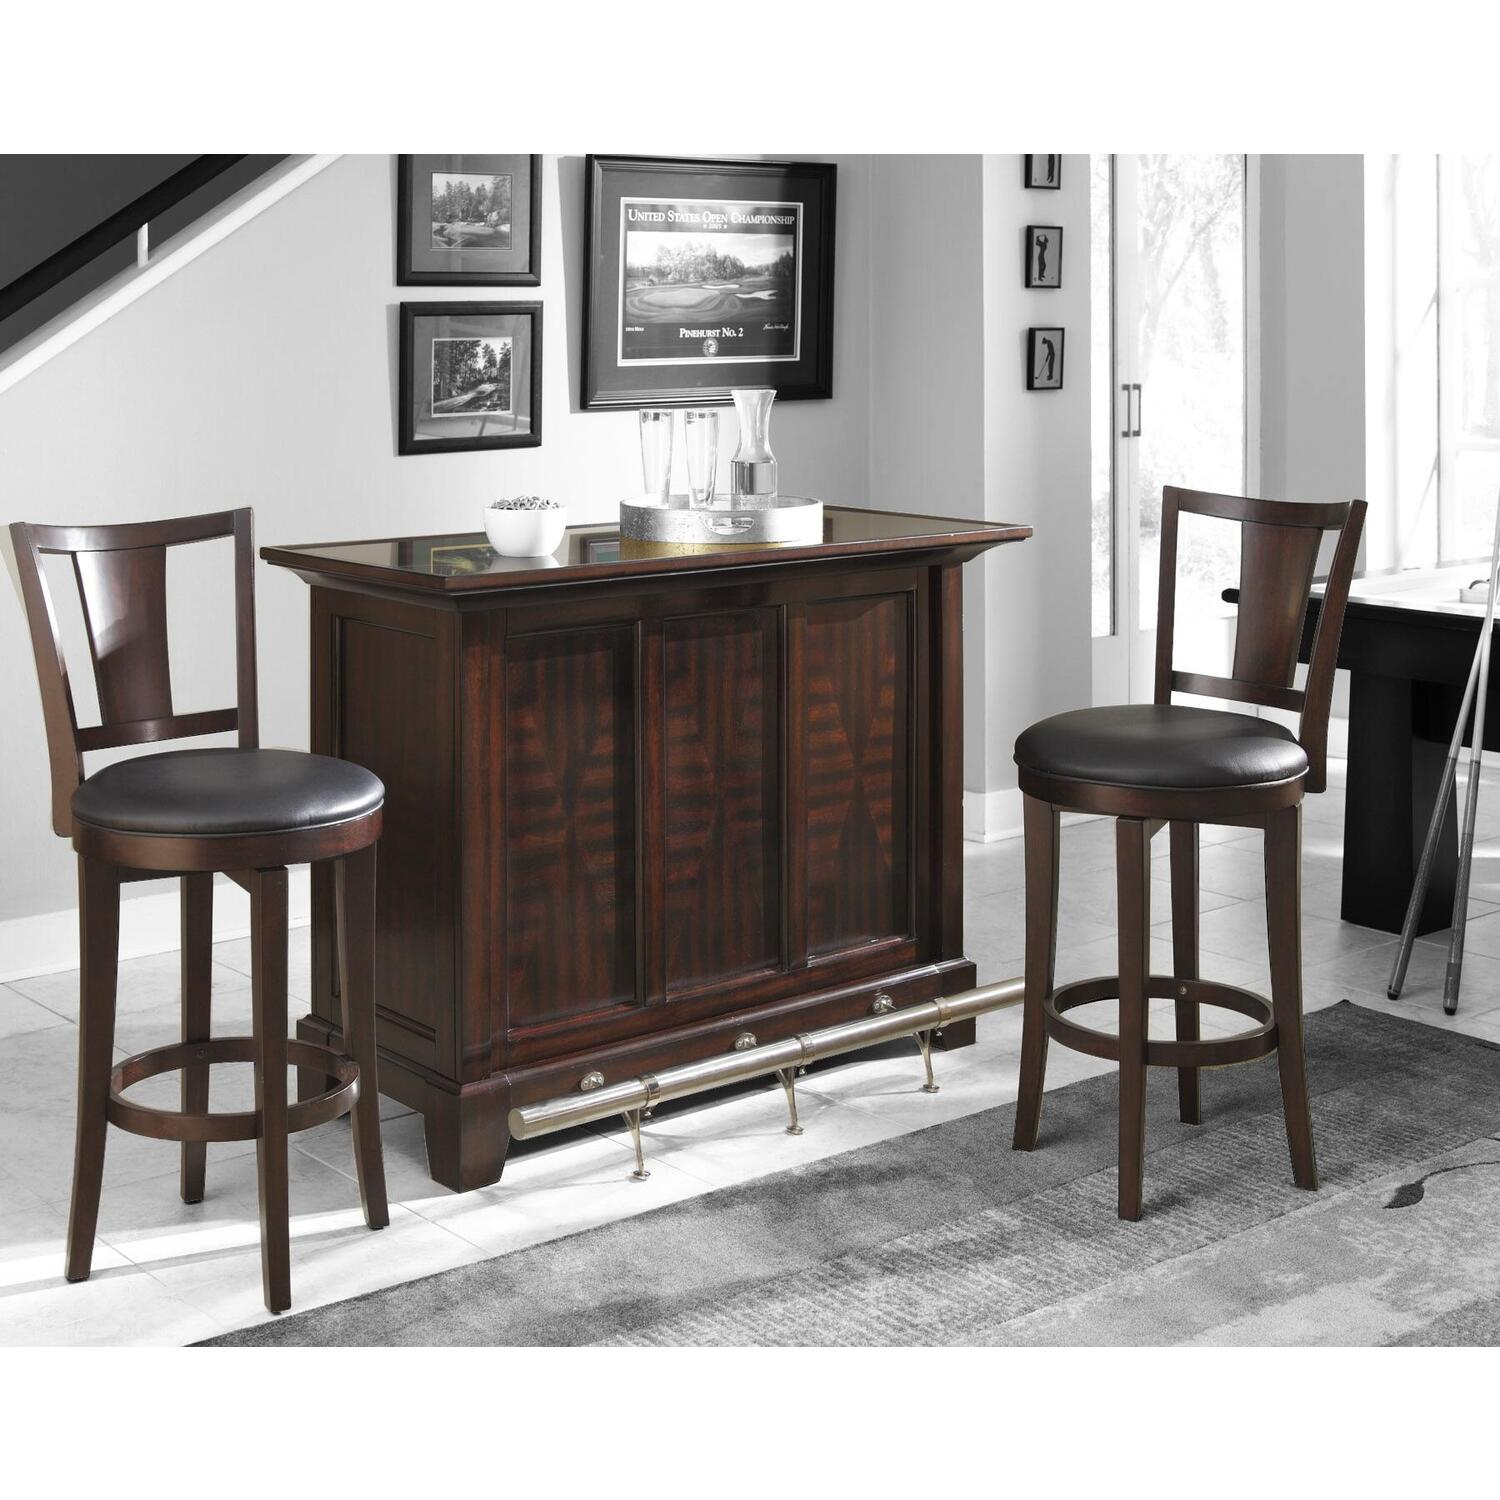 Home Styles Rio Vista 3pc Bar Set Bar Amp Two Stools